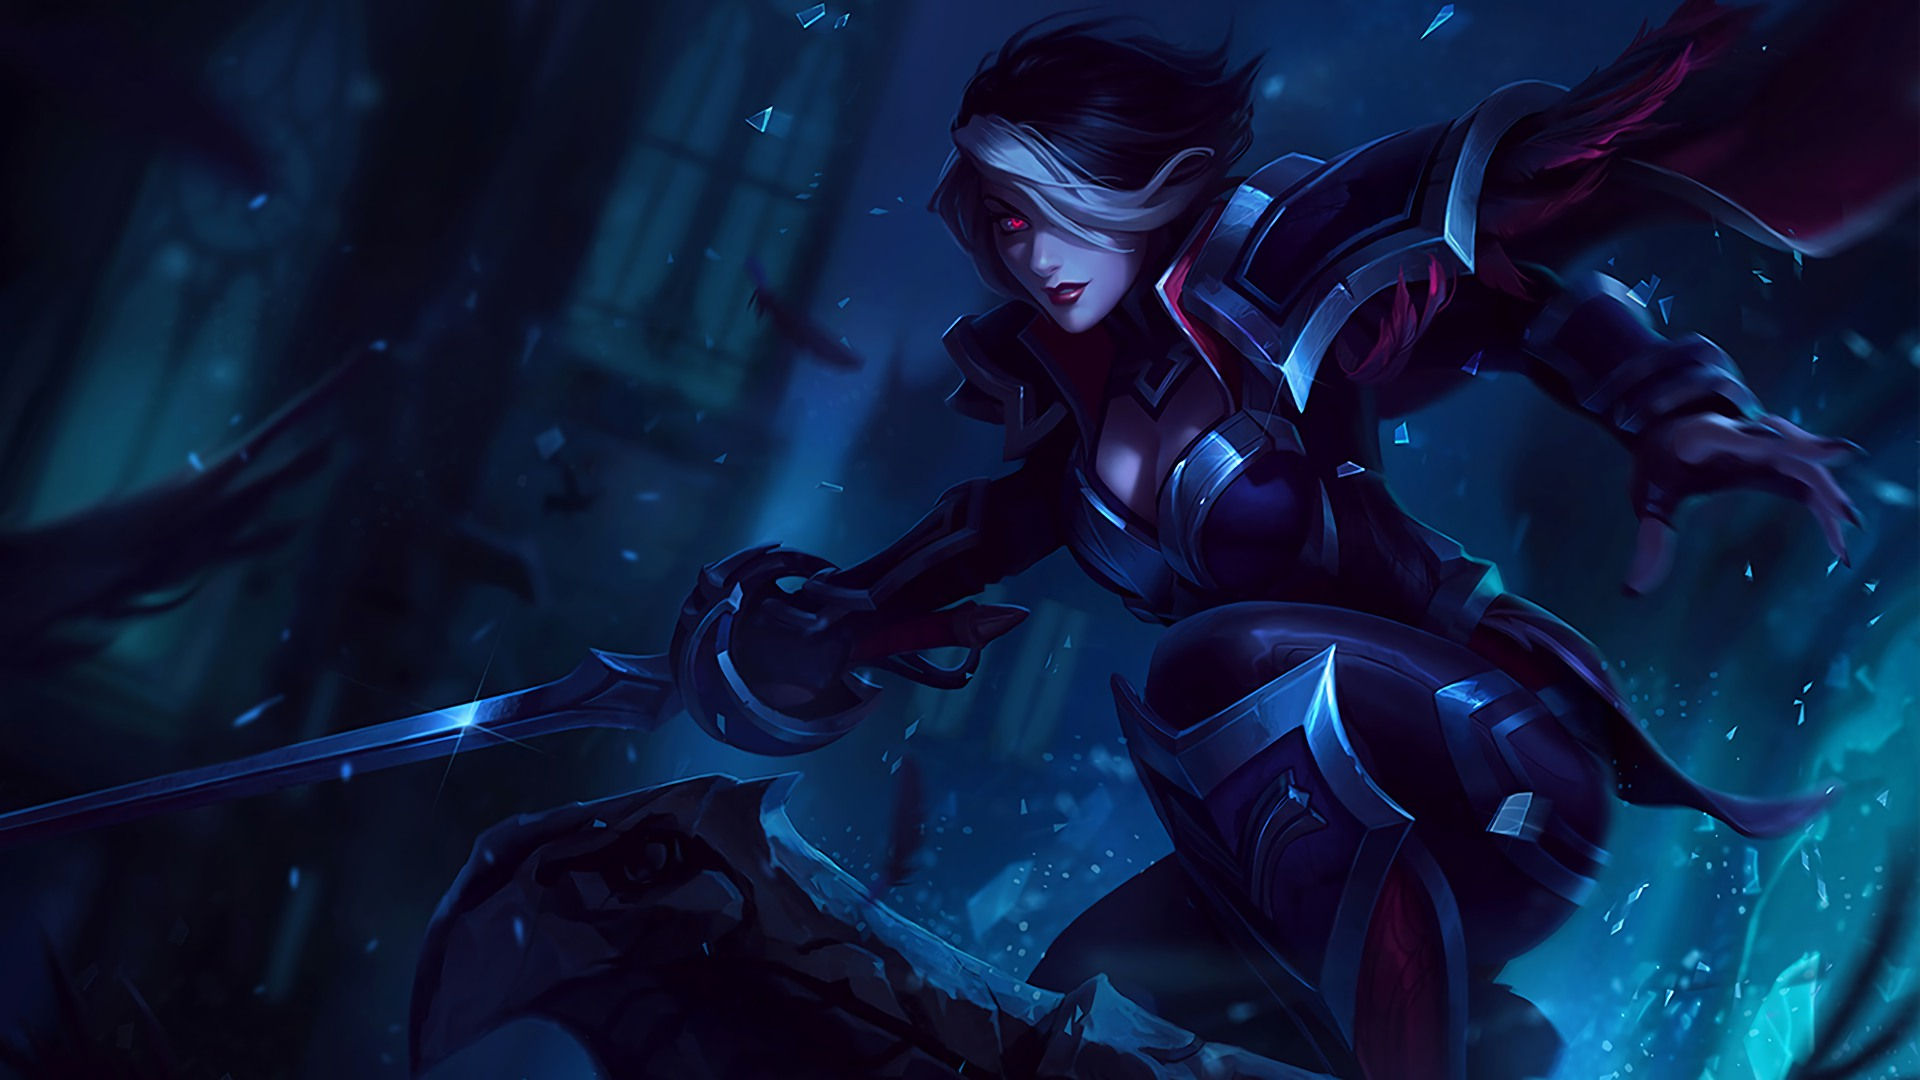 Nightraven Fiora Lolwallpapers